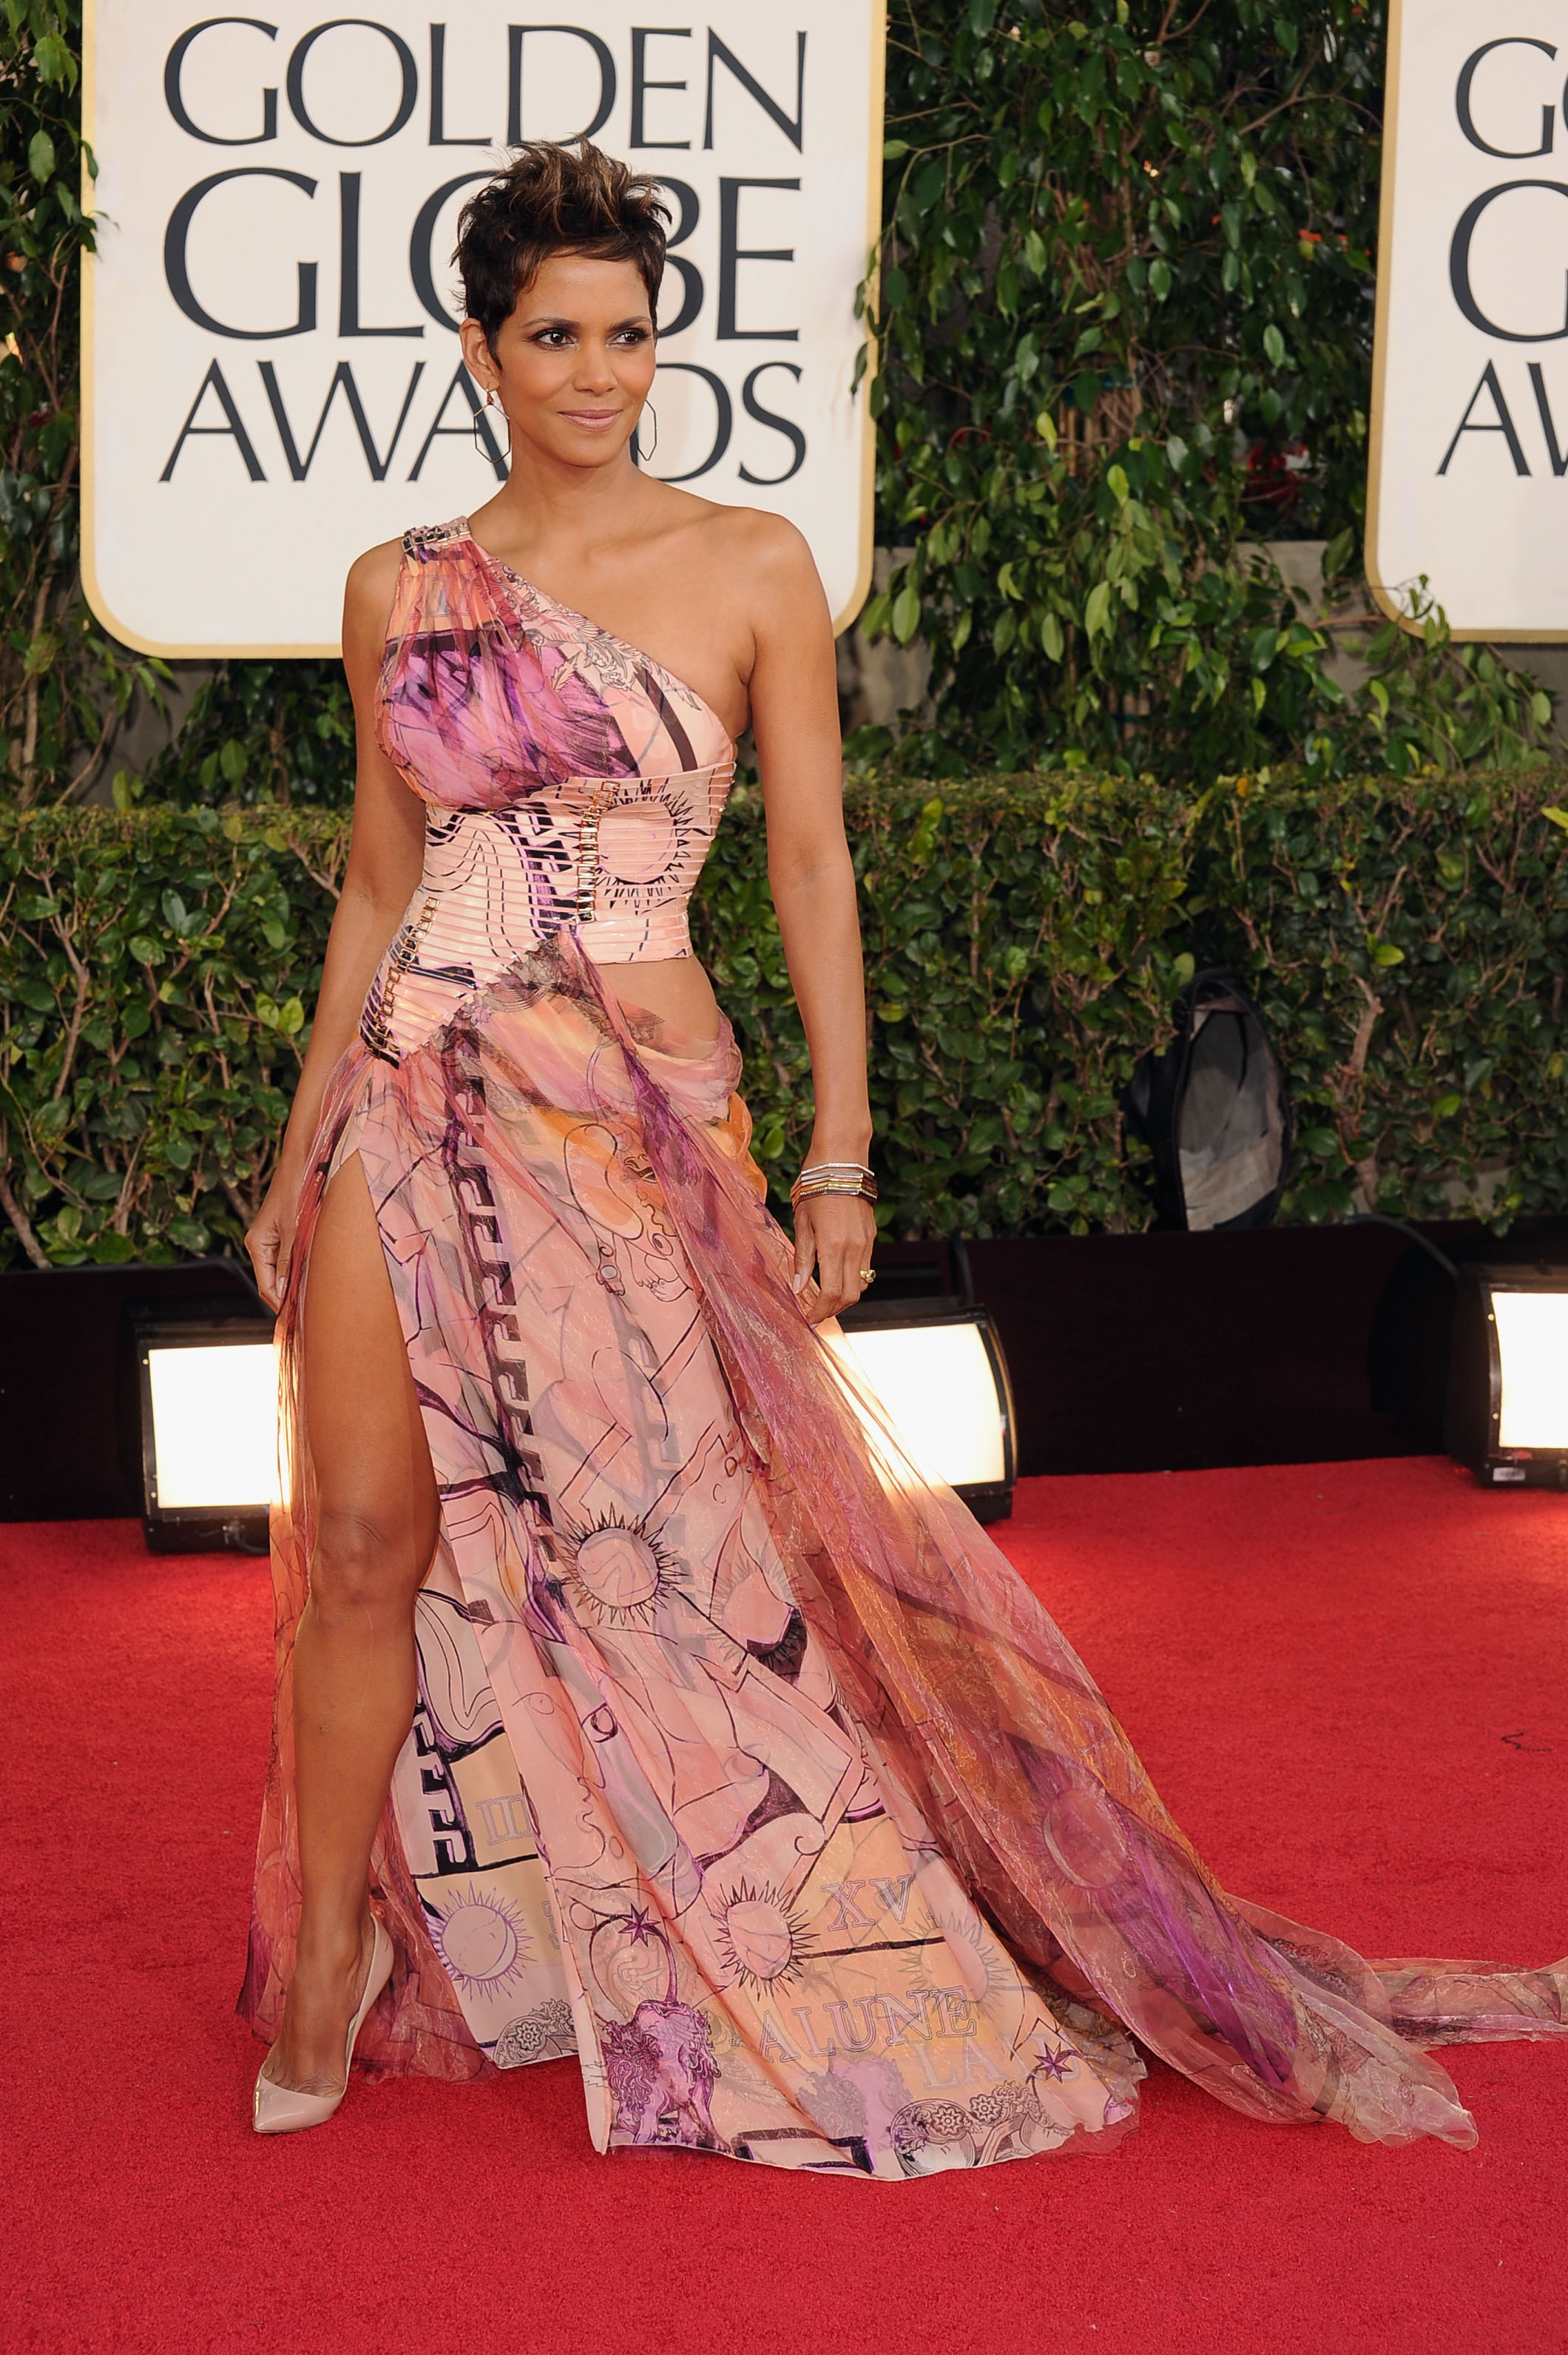 Halle Berry showed some leg in her floral gown.